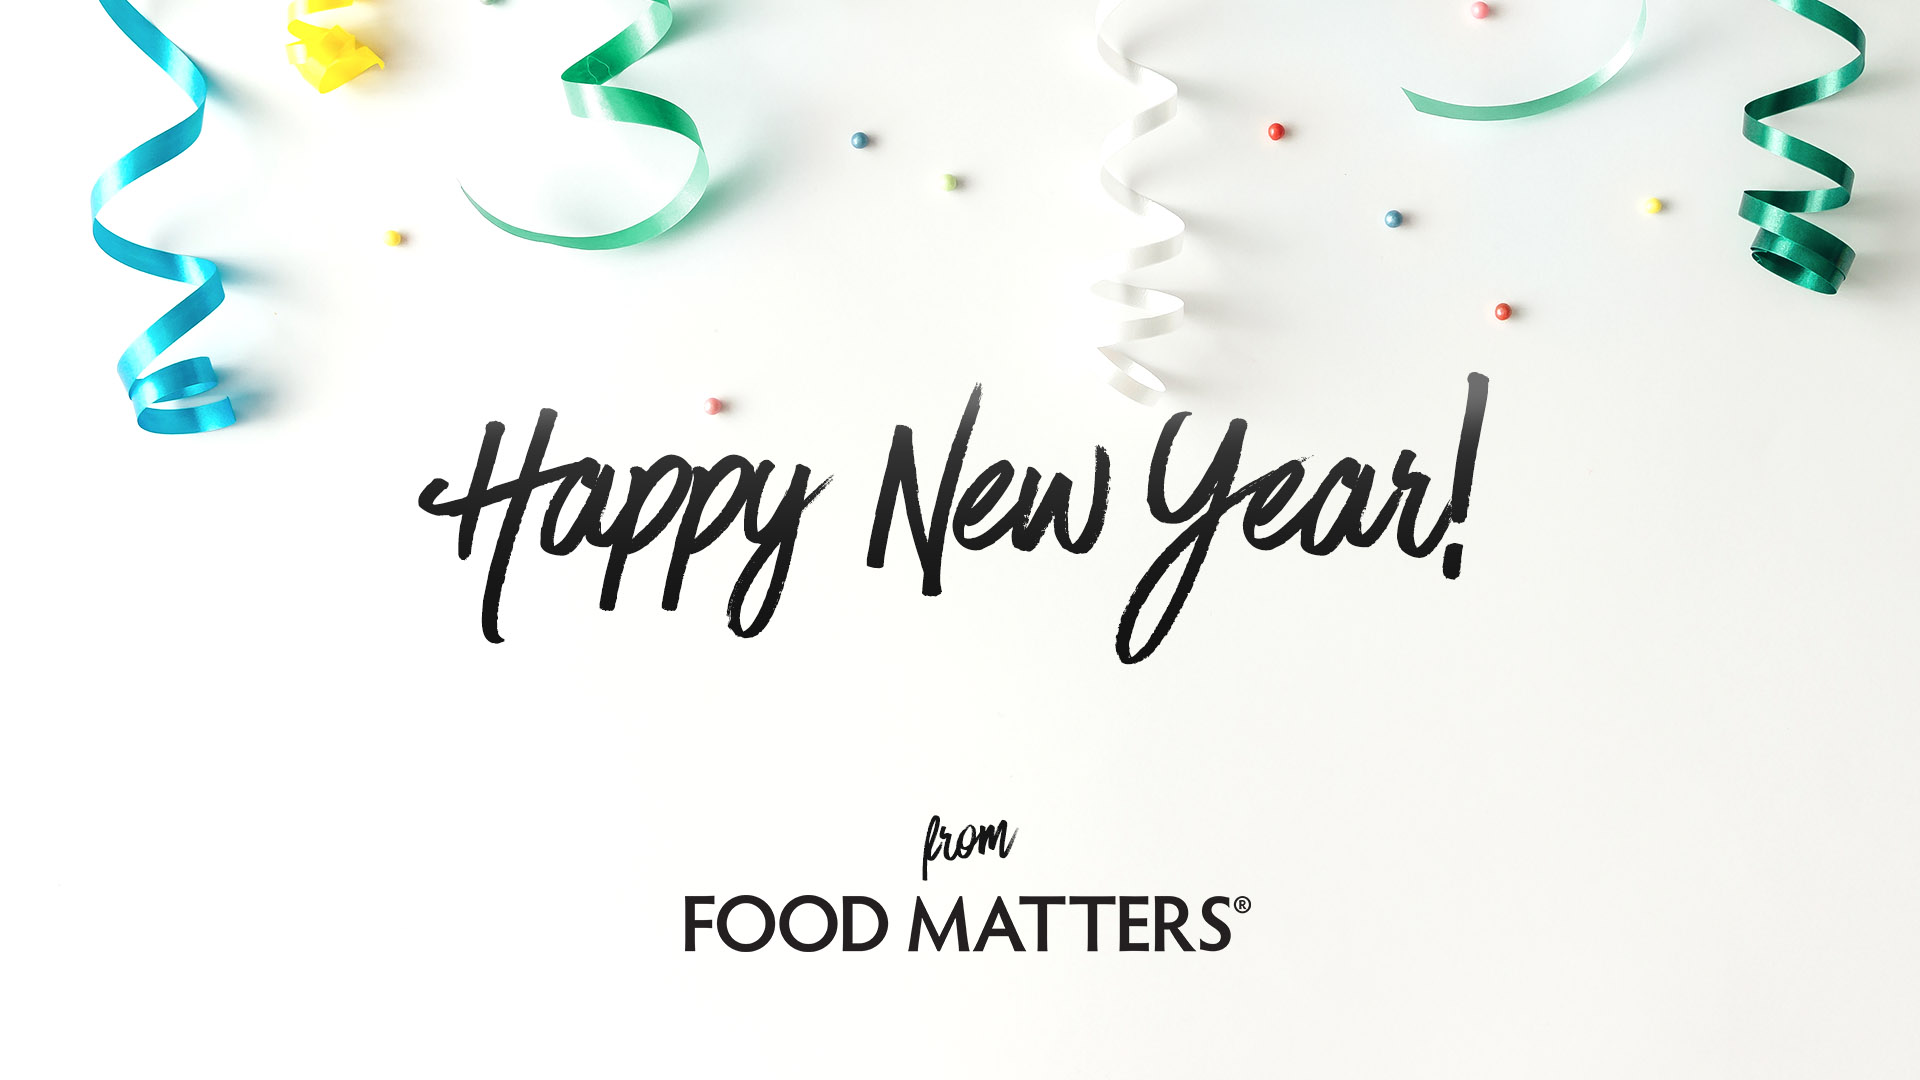 Happy New Year From Food Matters